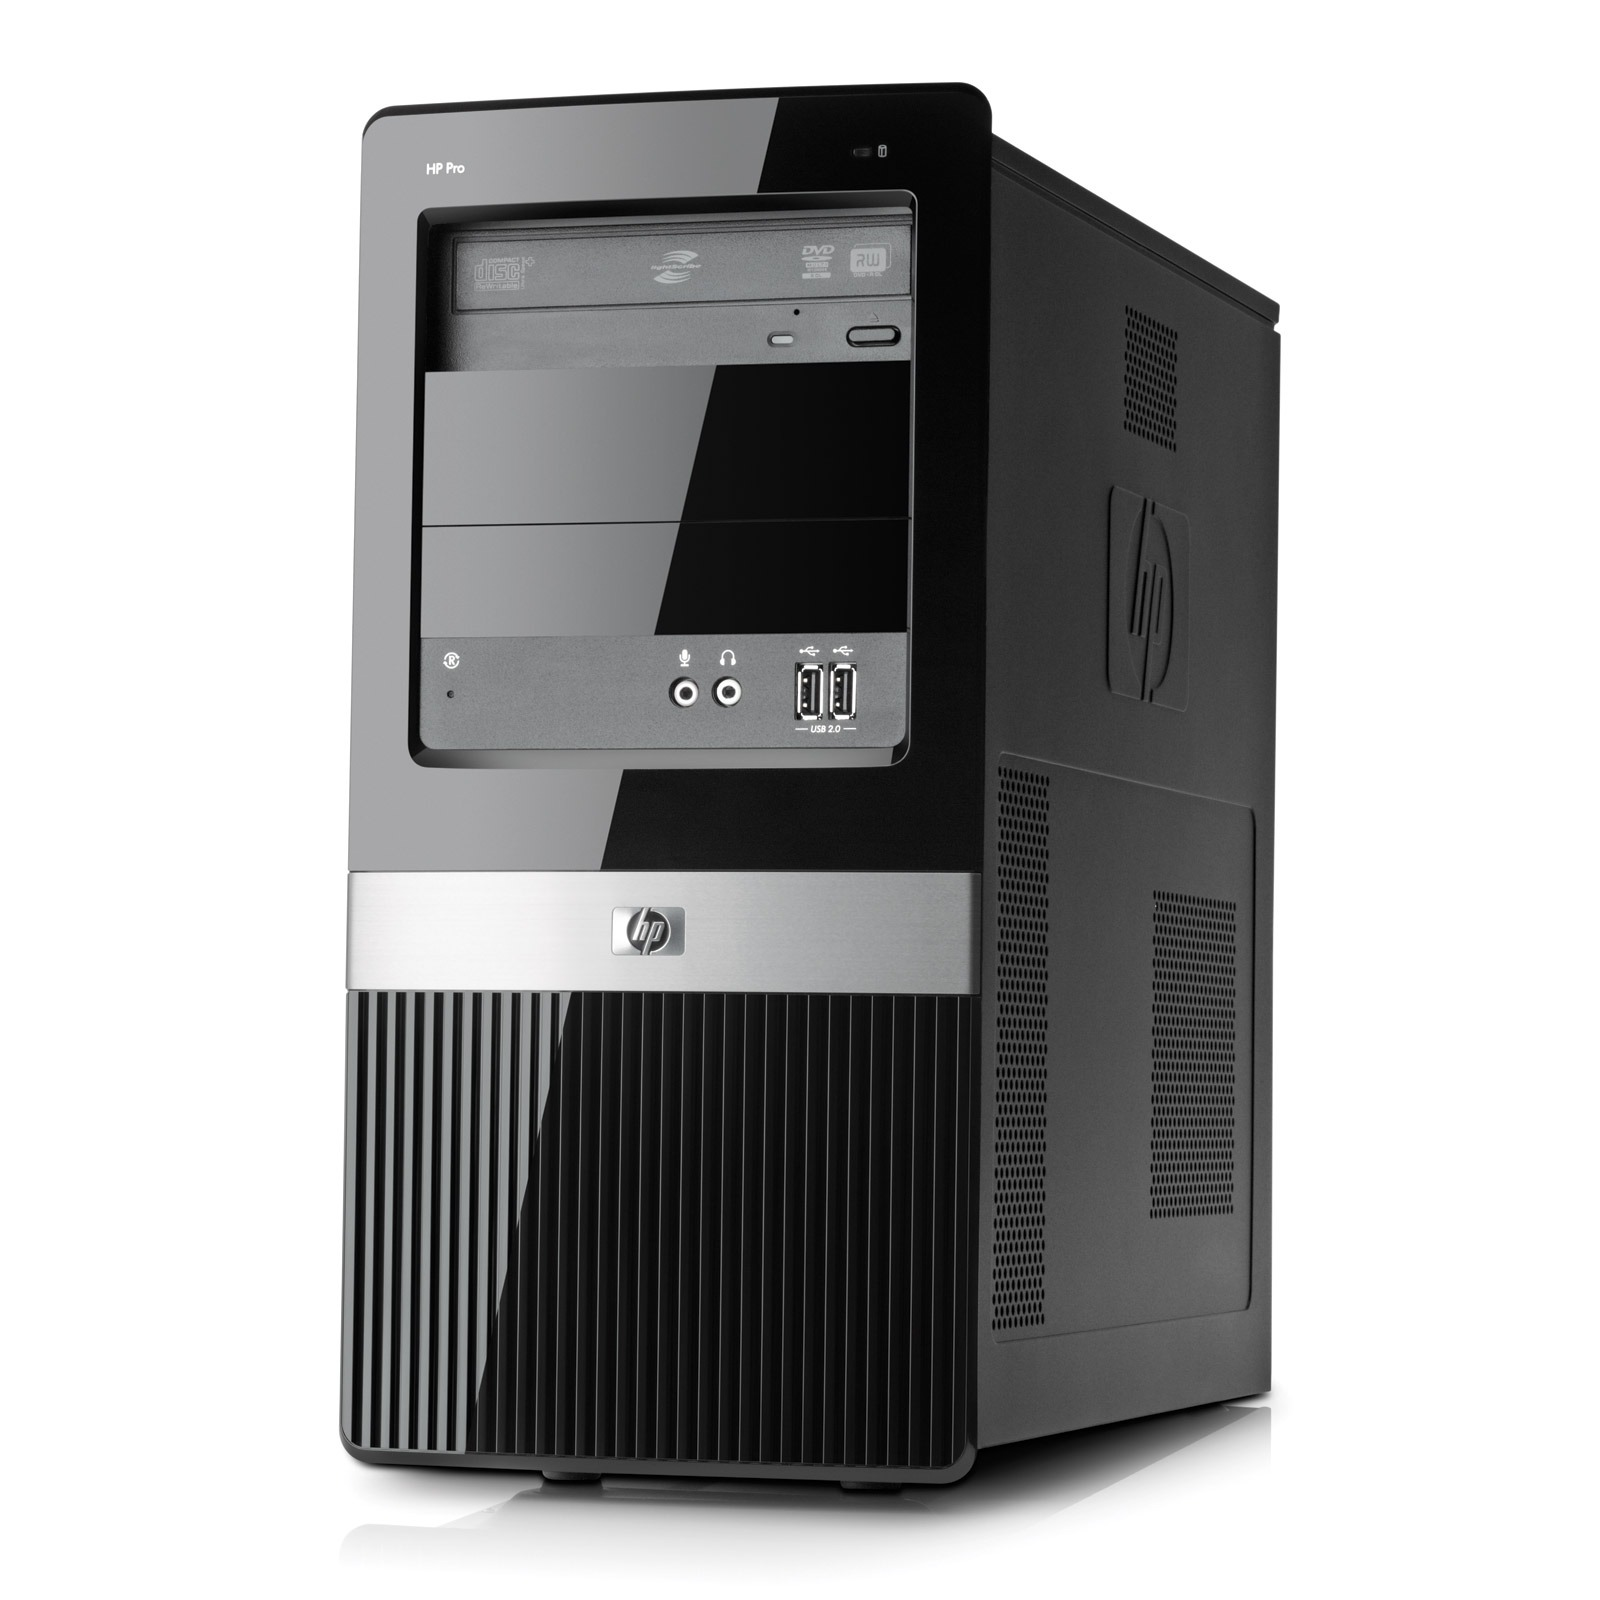 Hp pro 3120 wu271ea pc de bureau hp sur ldlc - Ordinateur de bureau windows 7 pro ...